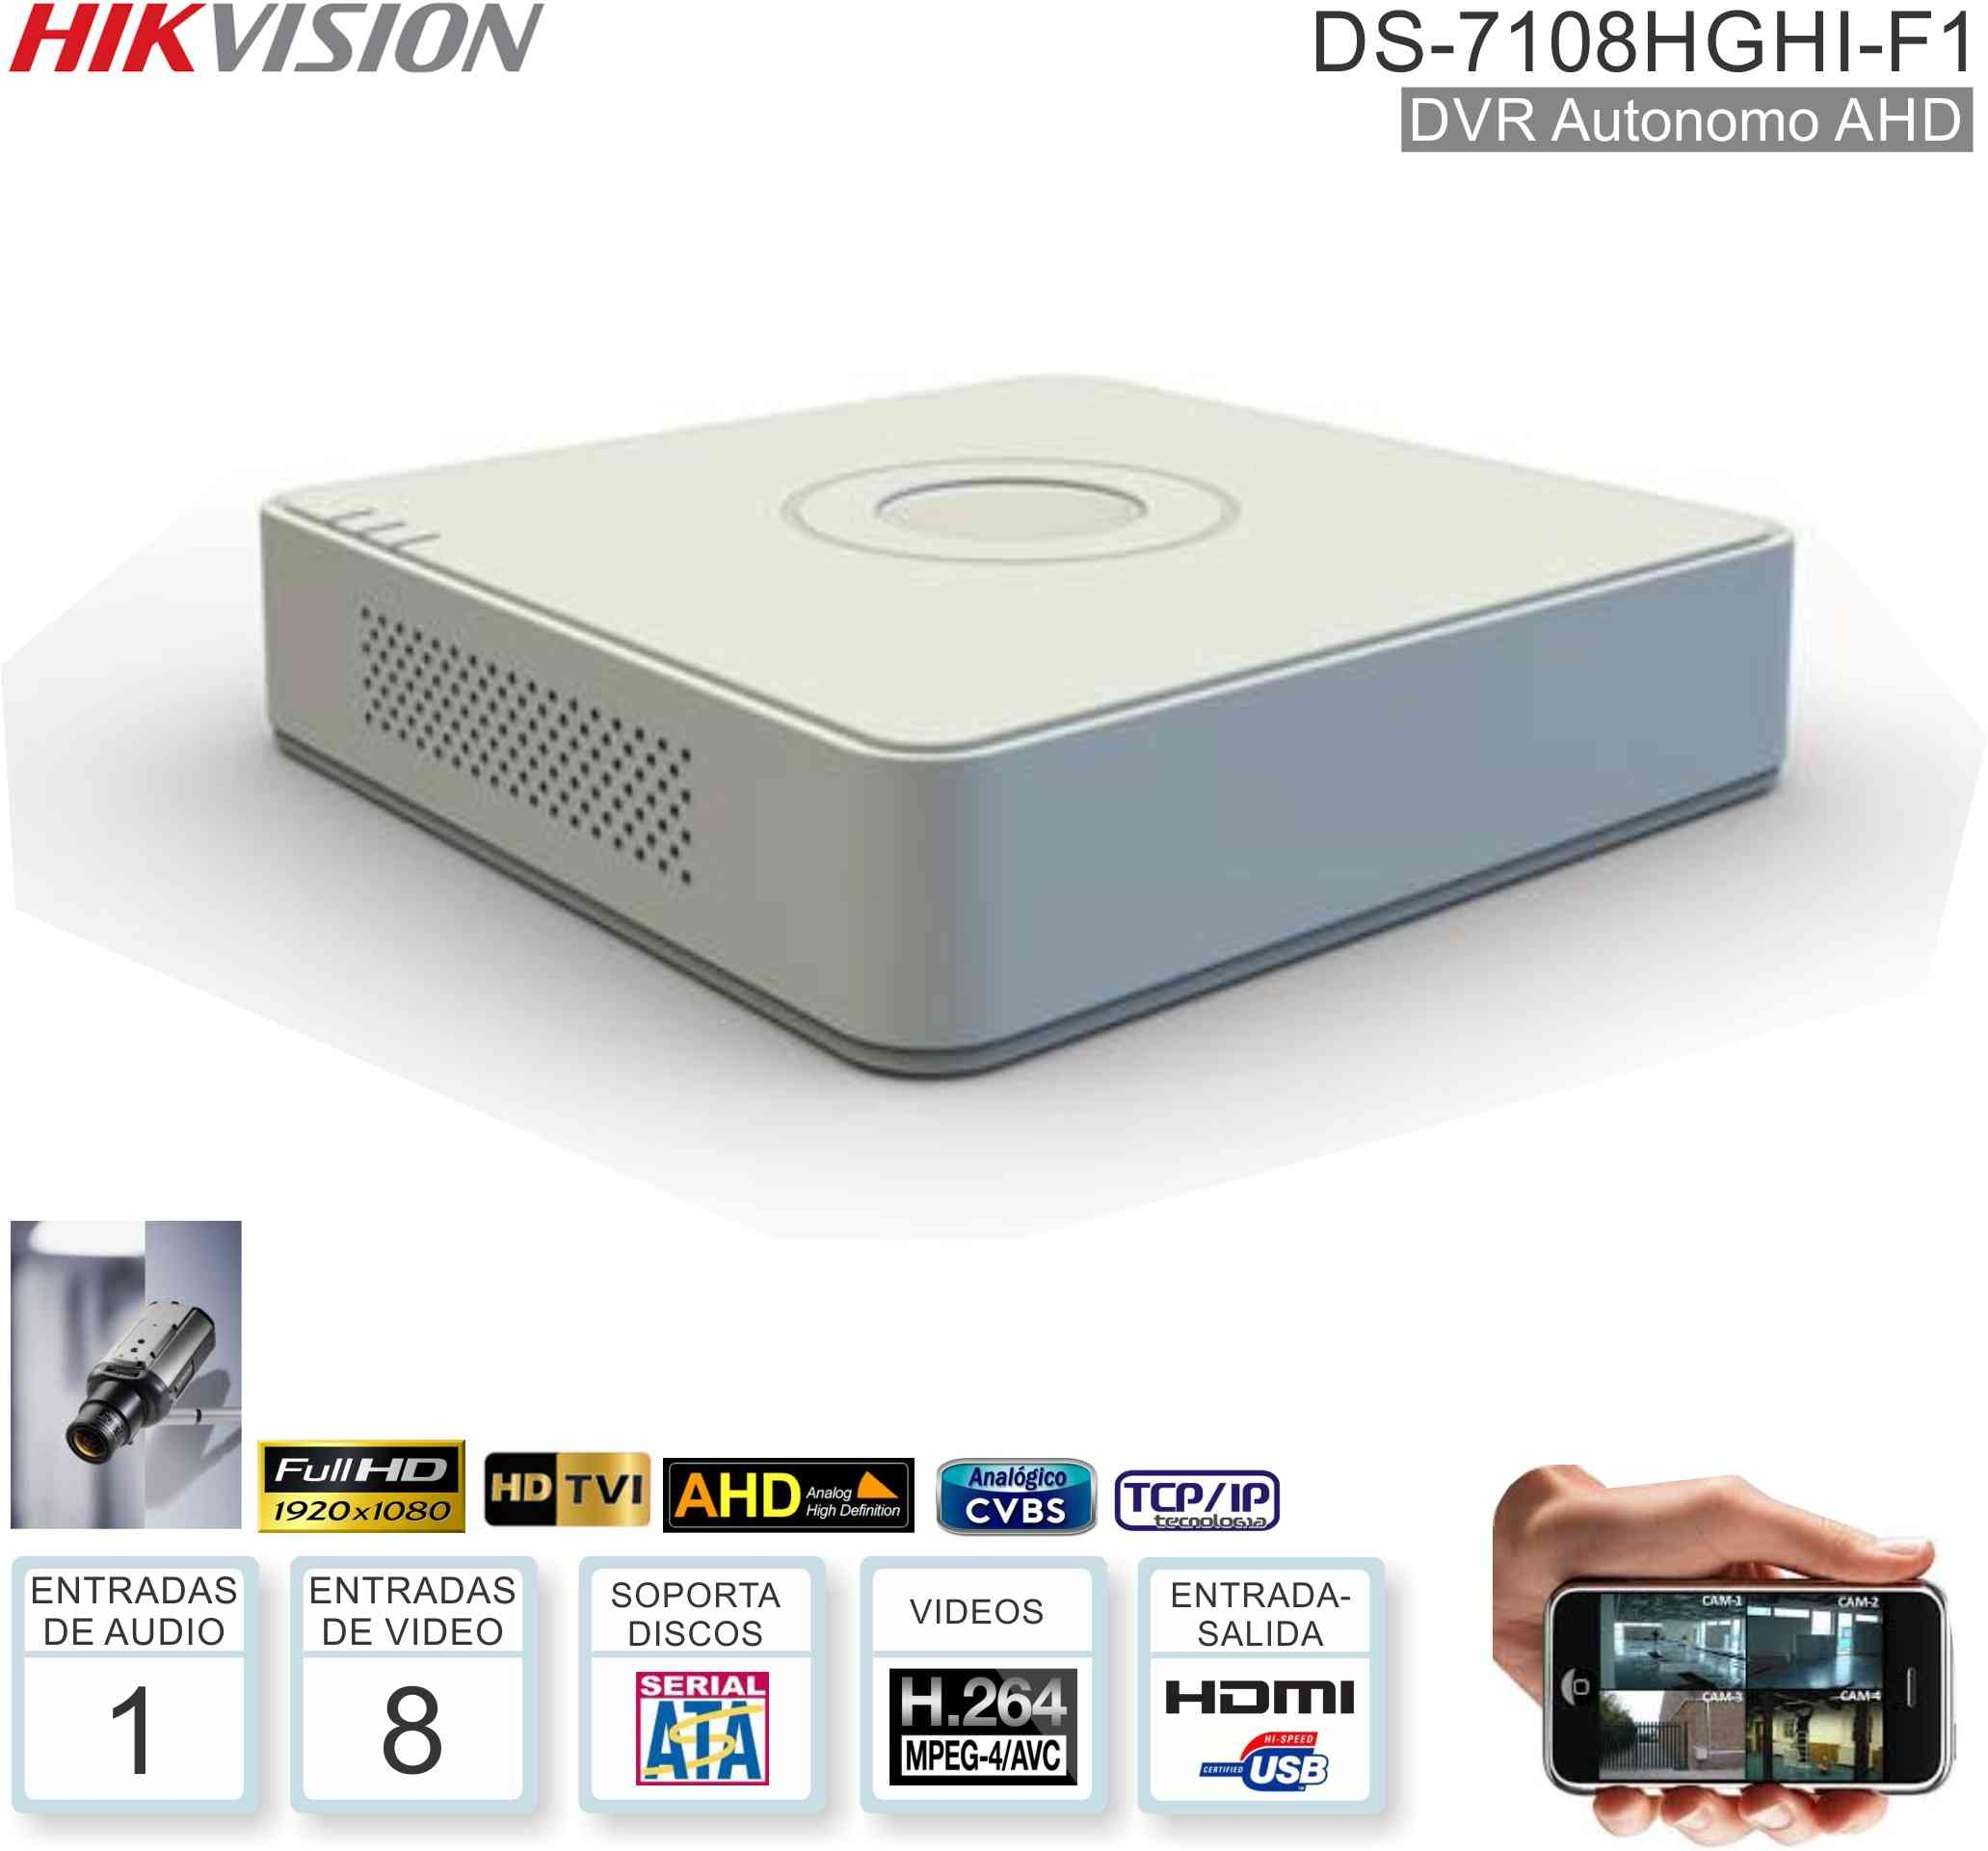 DVR AHD1080 08 Can HIKVISION 7108HGHI-F1